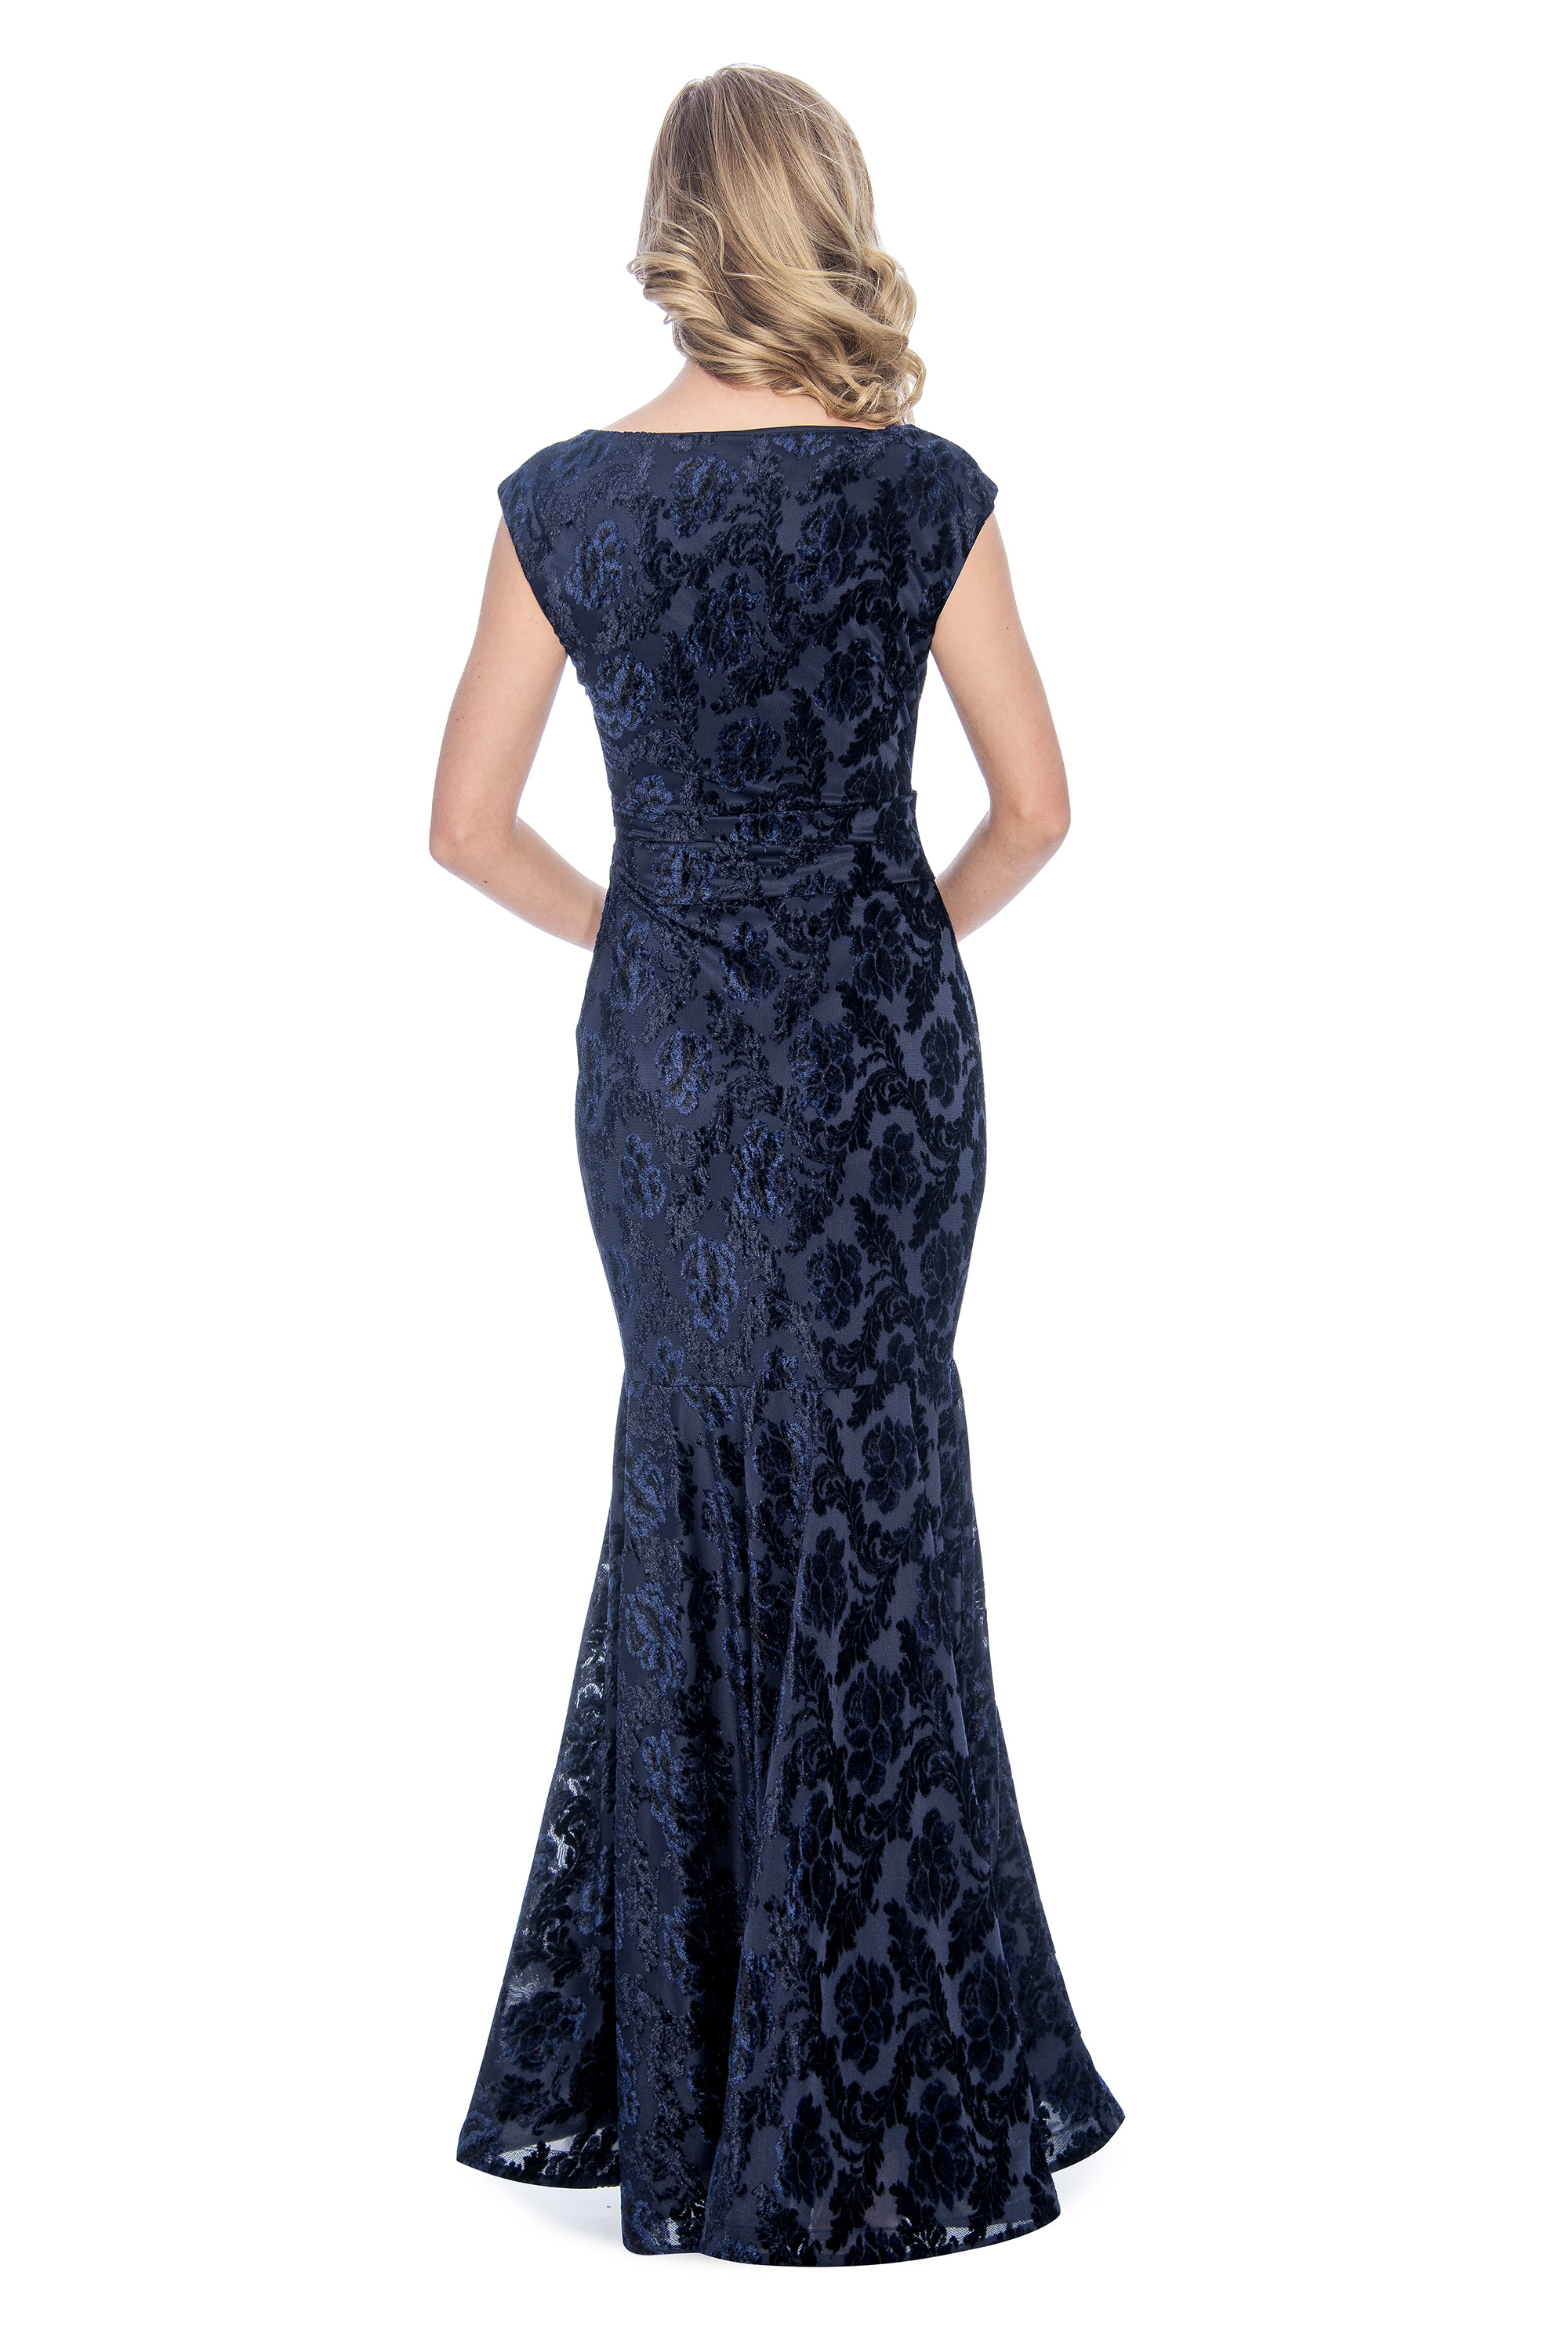 Cowl neck, velvet burn out, long dress